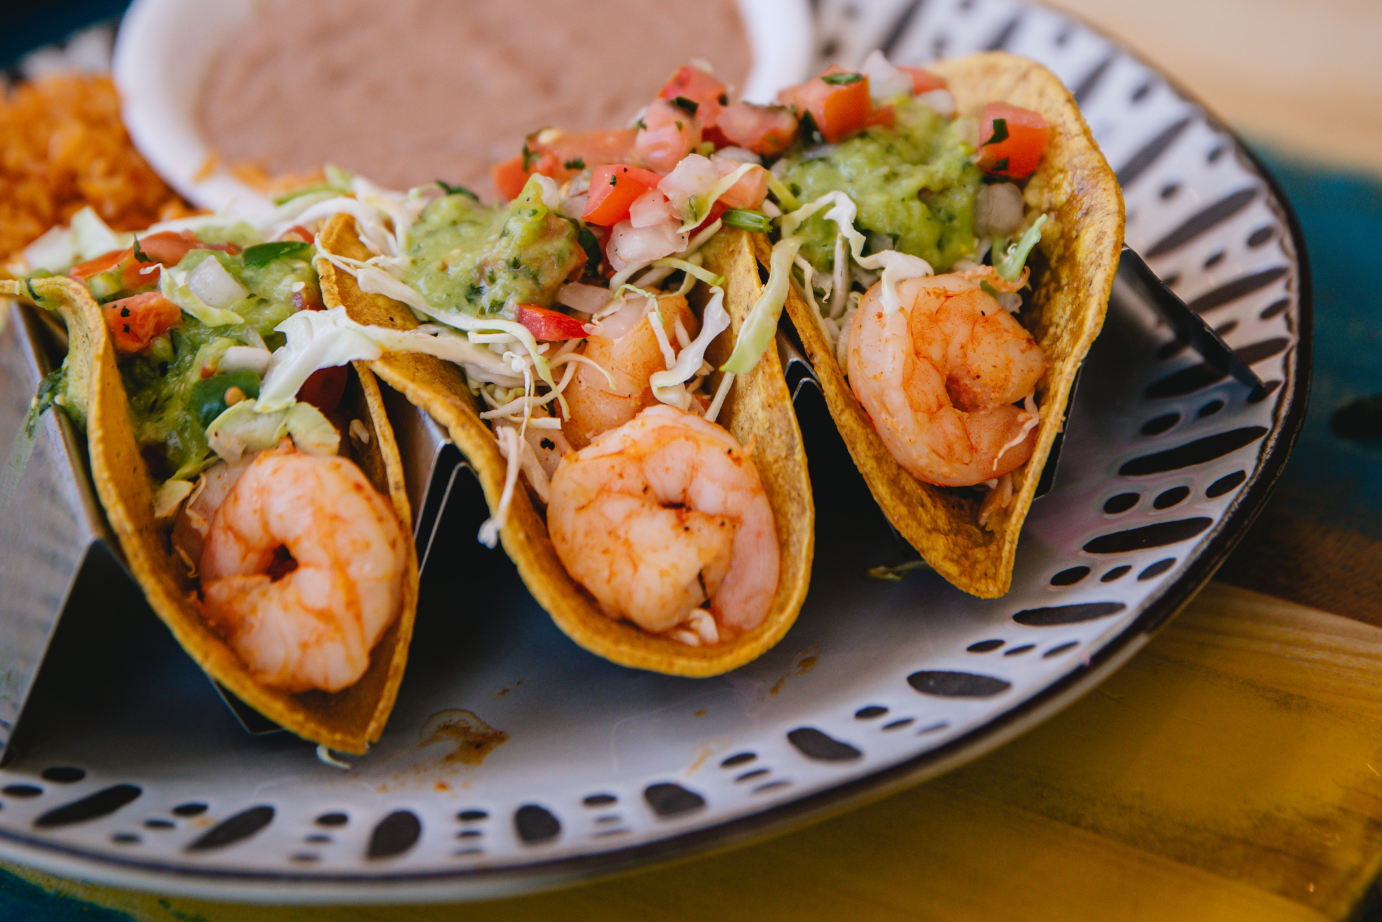 Three tacos with shrimps and salad